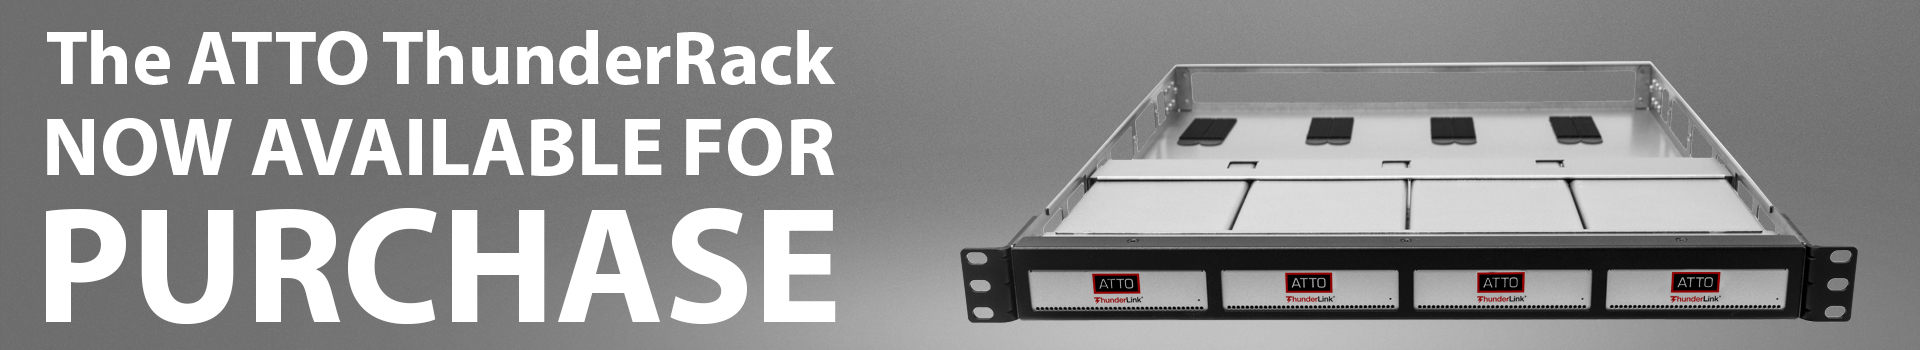 The ATTO ThunderRack NOW AVAILABLE FOR PURCHASE